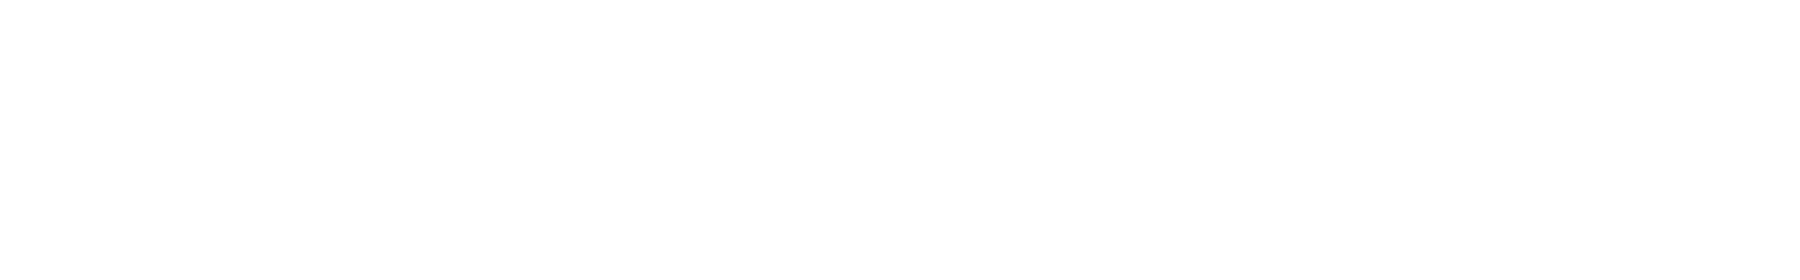 veh1 cutted sounds   124